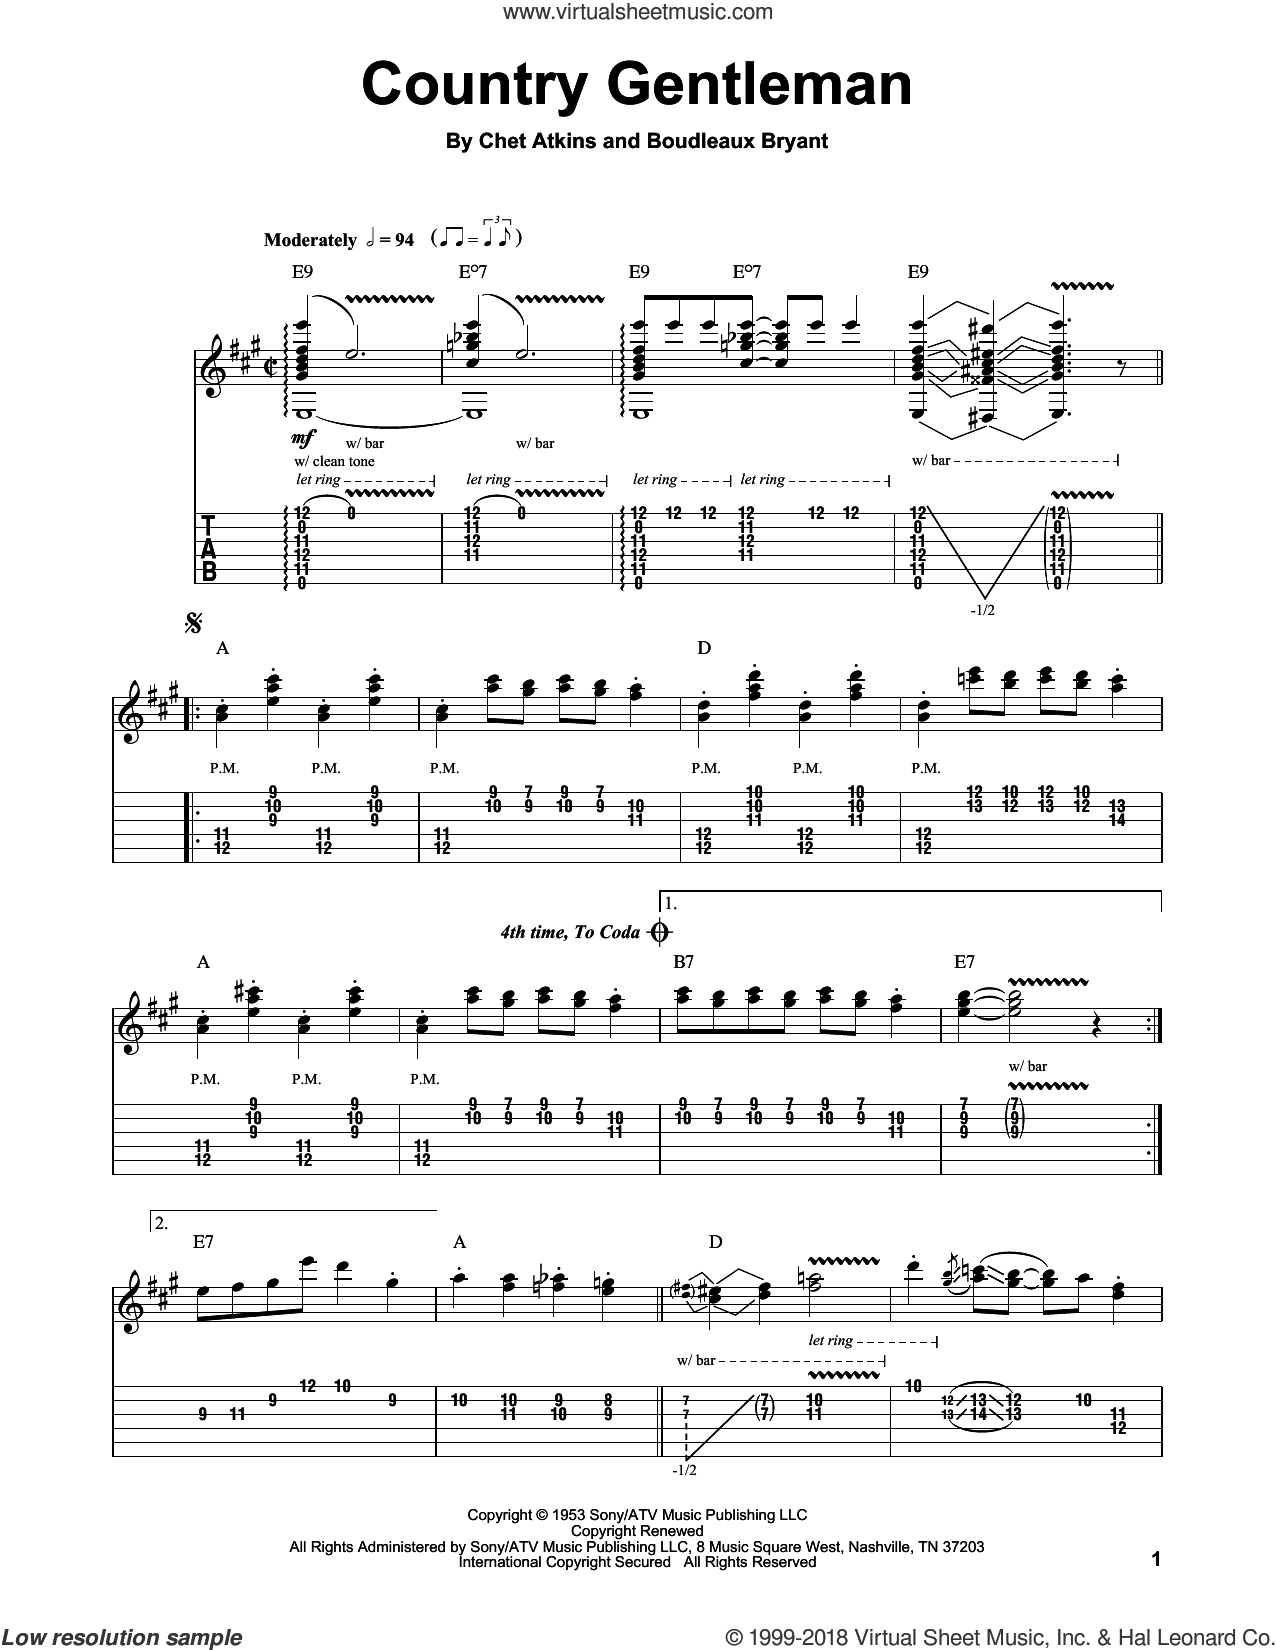 Country Gentleman sheet music for guitar (tablature, play-along) by Chet Atkins